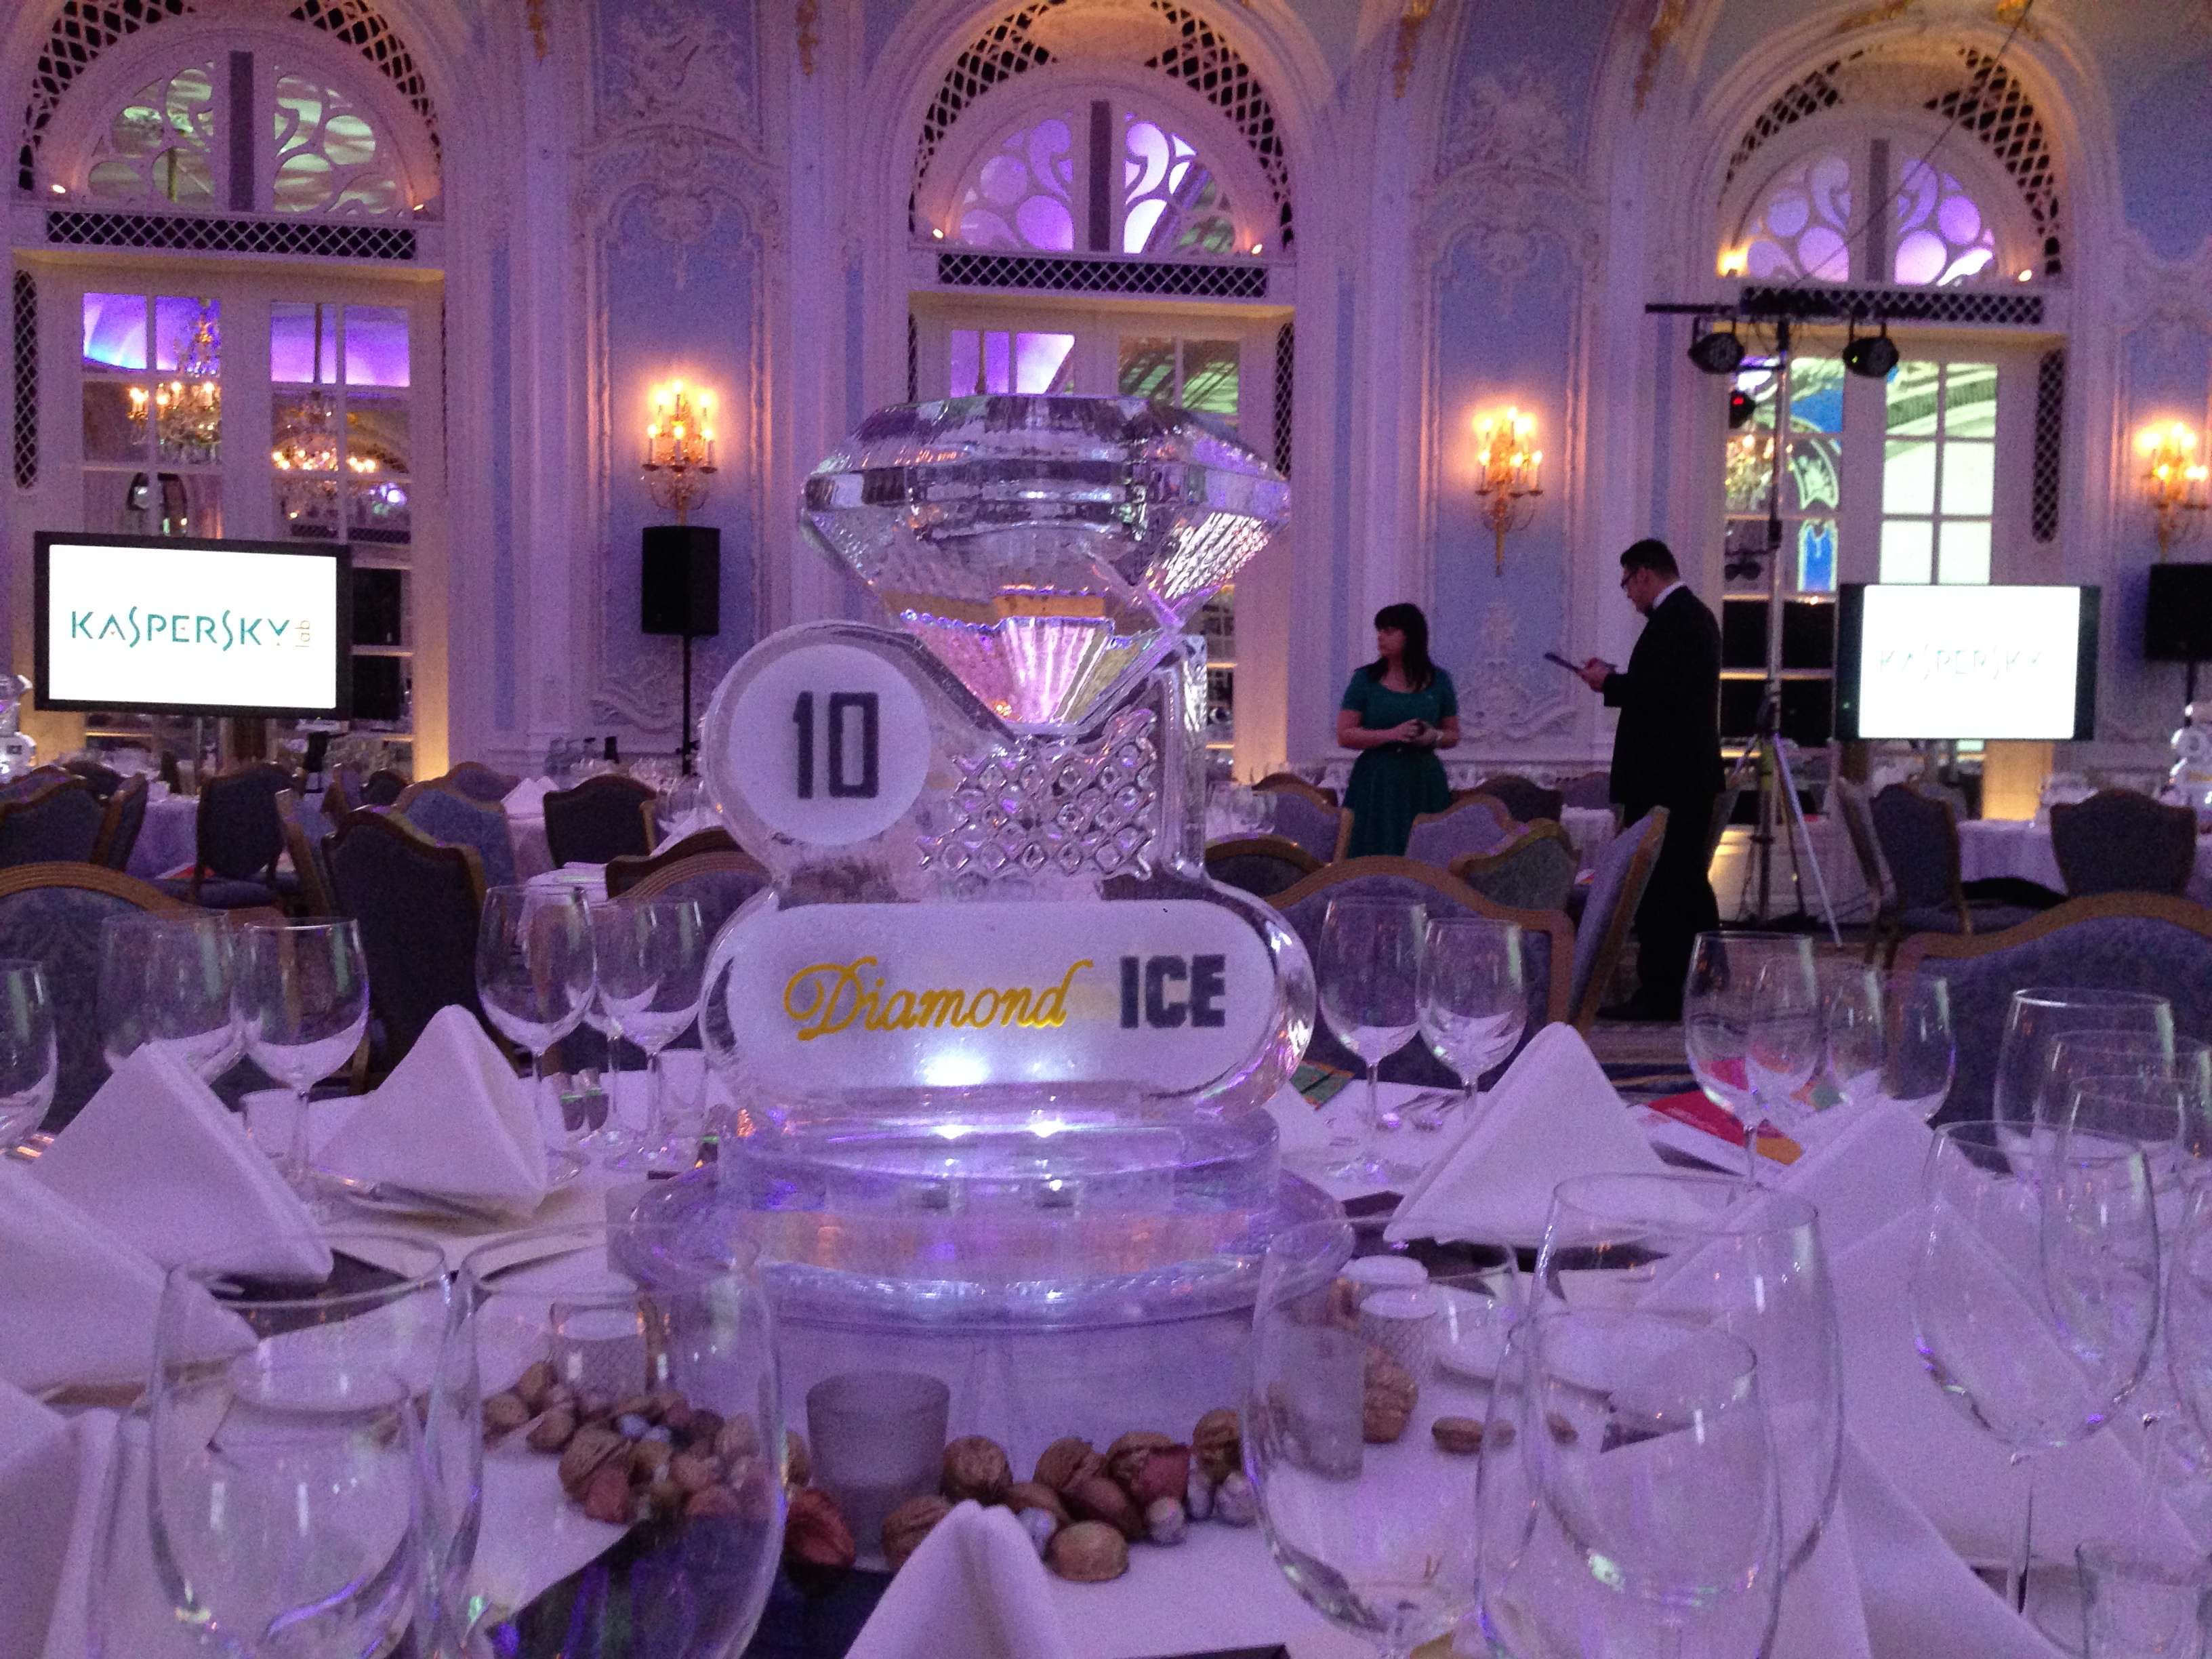 Diamond Ice Ice Table Centre